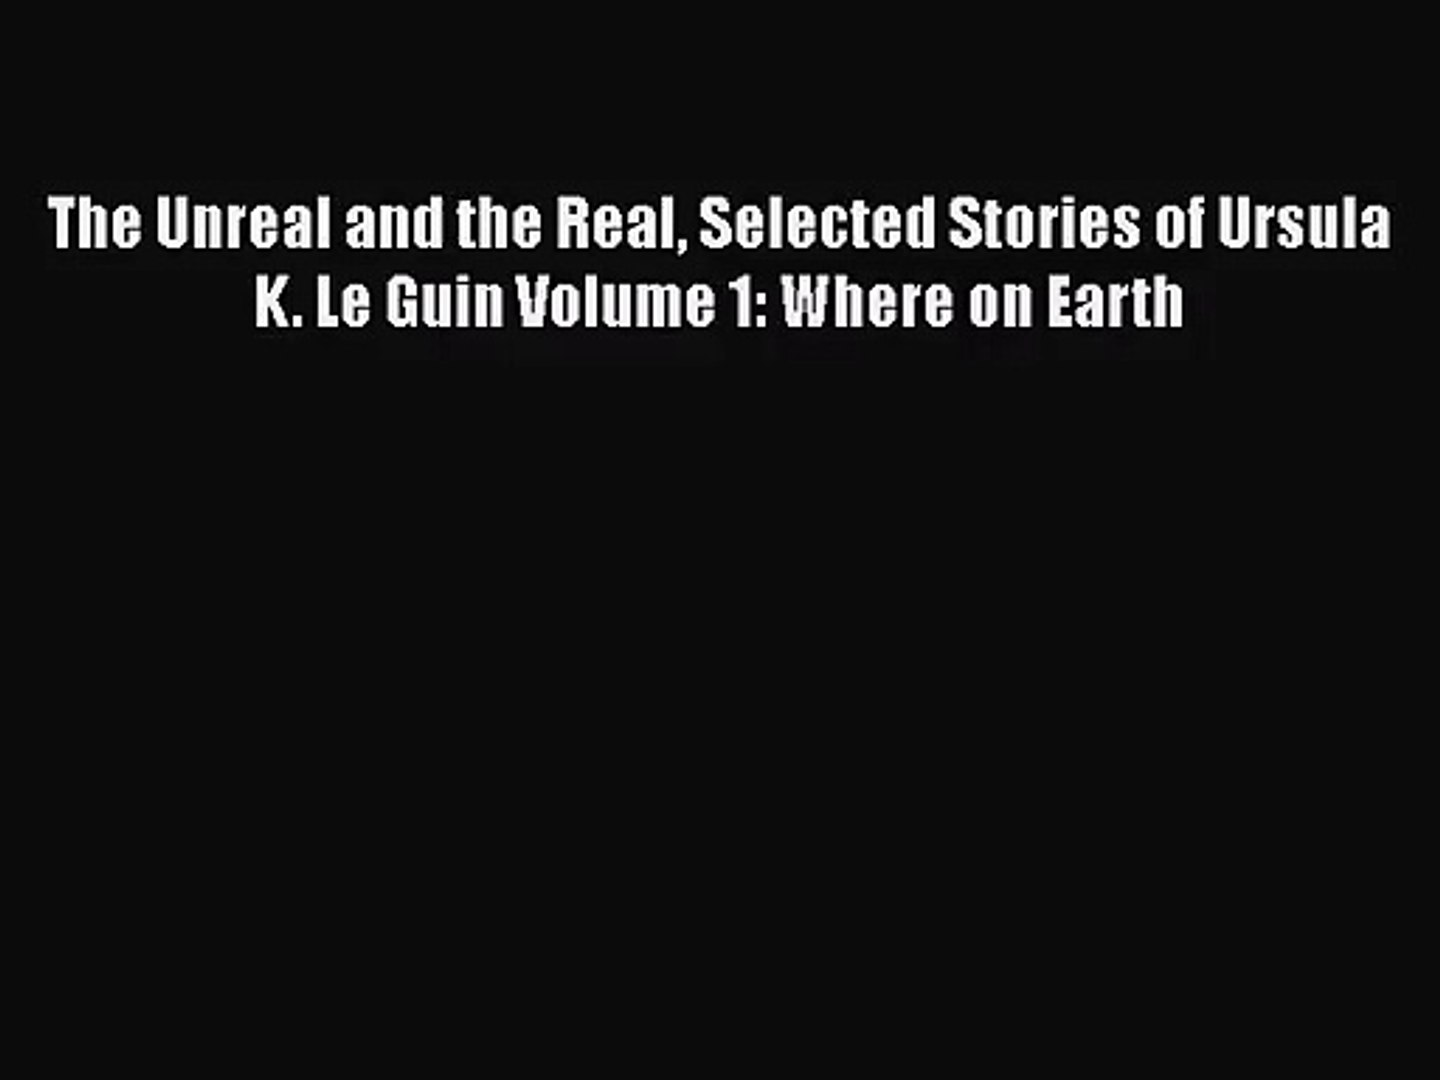 The Unreal and the Real: Selected Stories, Volume 1: Where on Earth